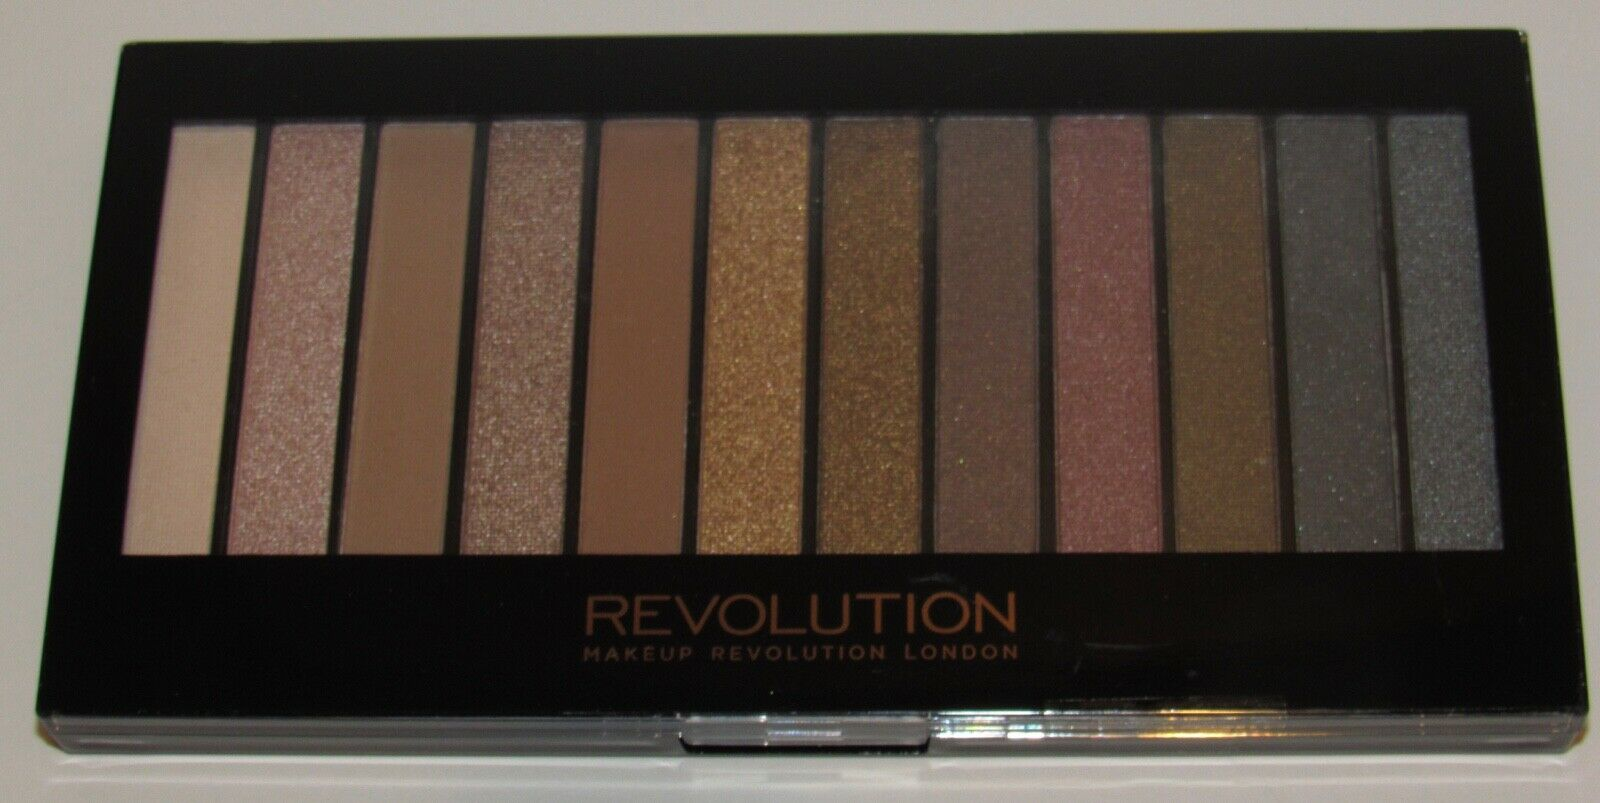 Makeup Revolution Redemption Eyeshadow Palette Iconic 1*Comp